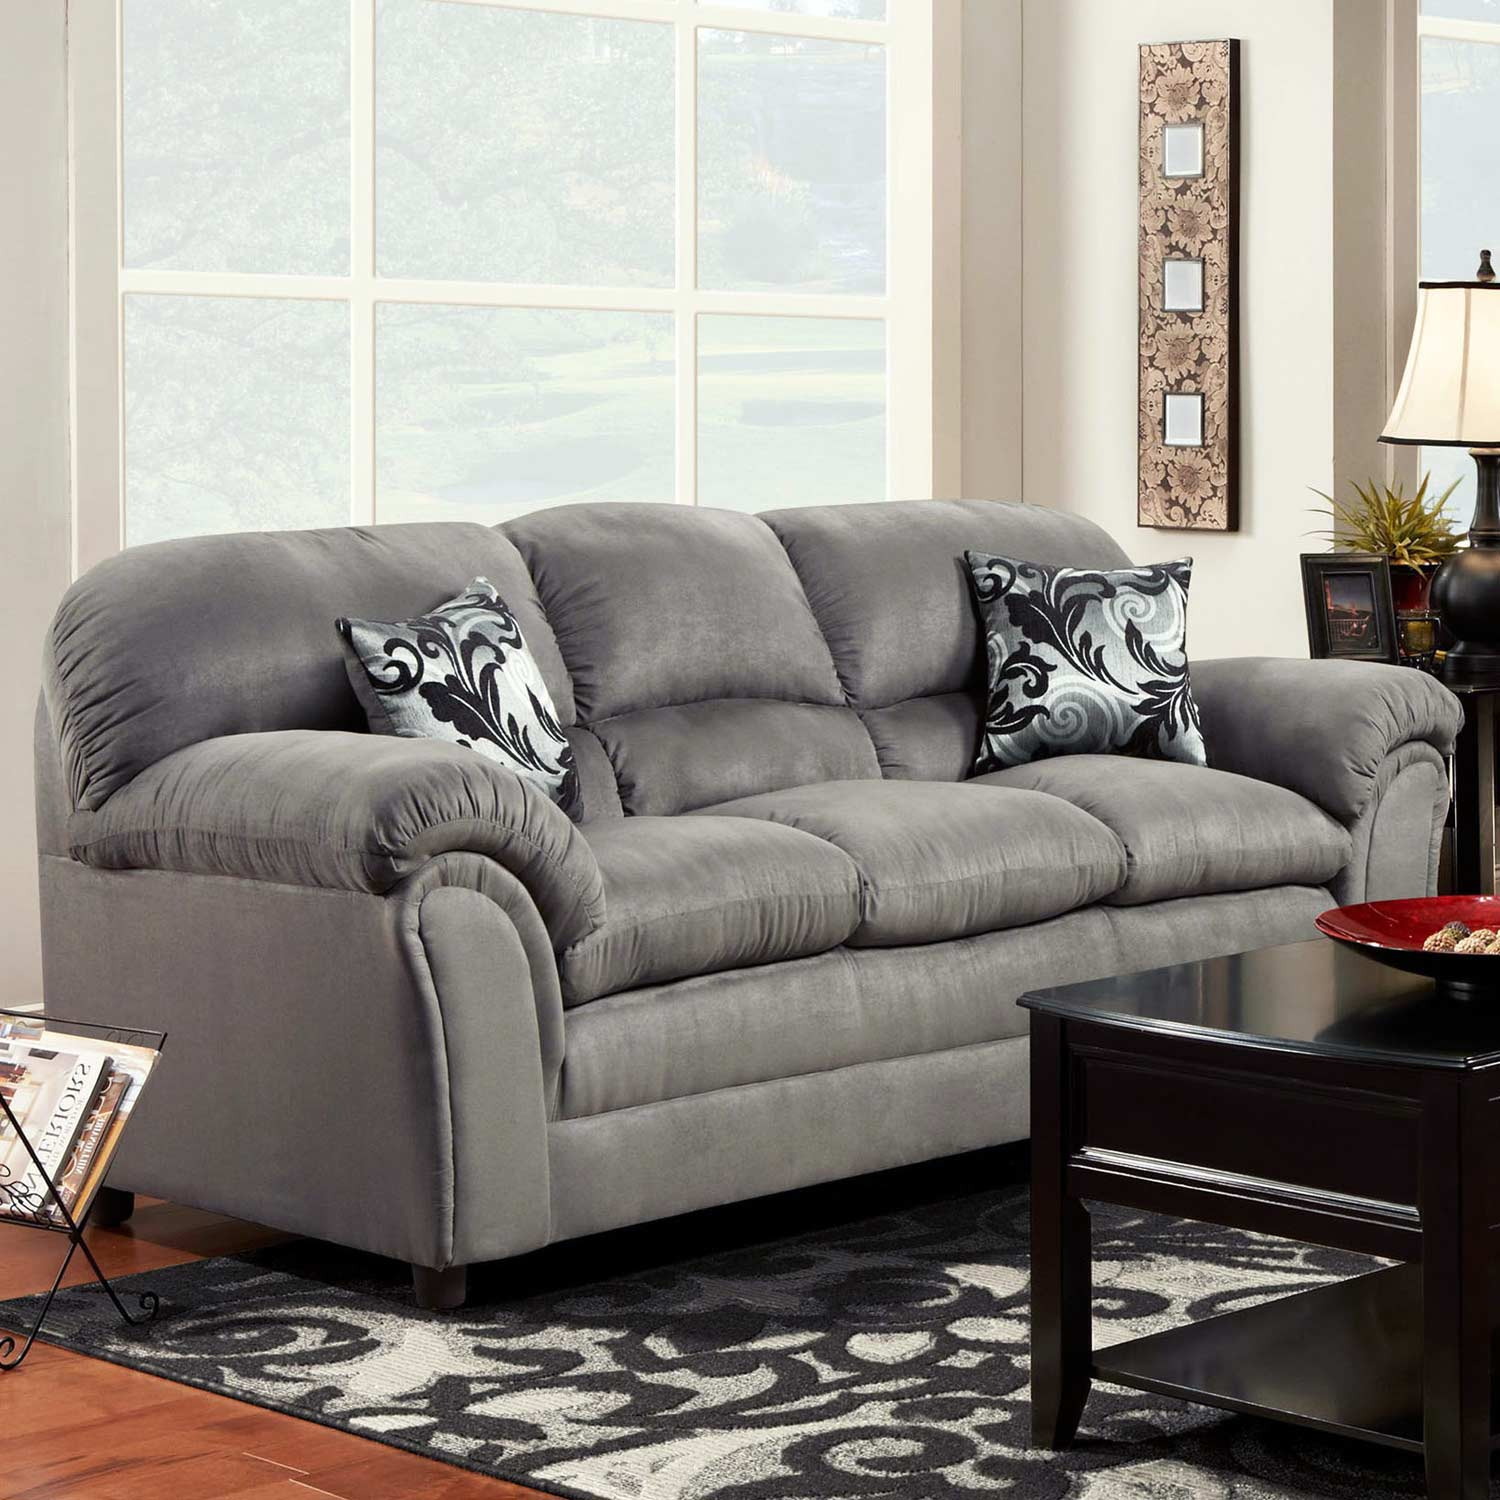 Joyce Padded Fabric Sofa - Victory Lane Dolphin - CHF-471250-S-VLD